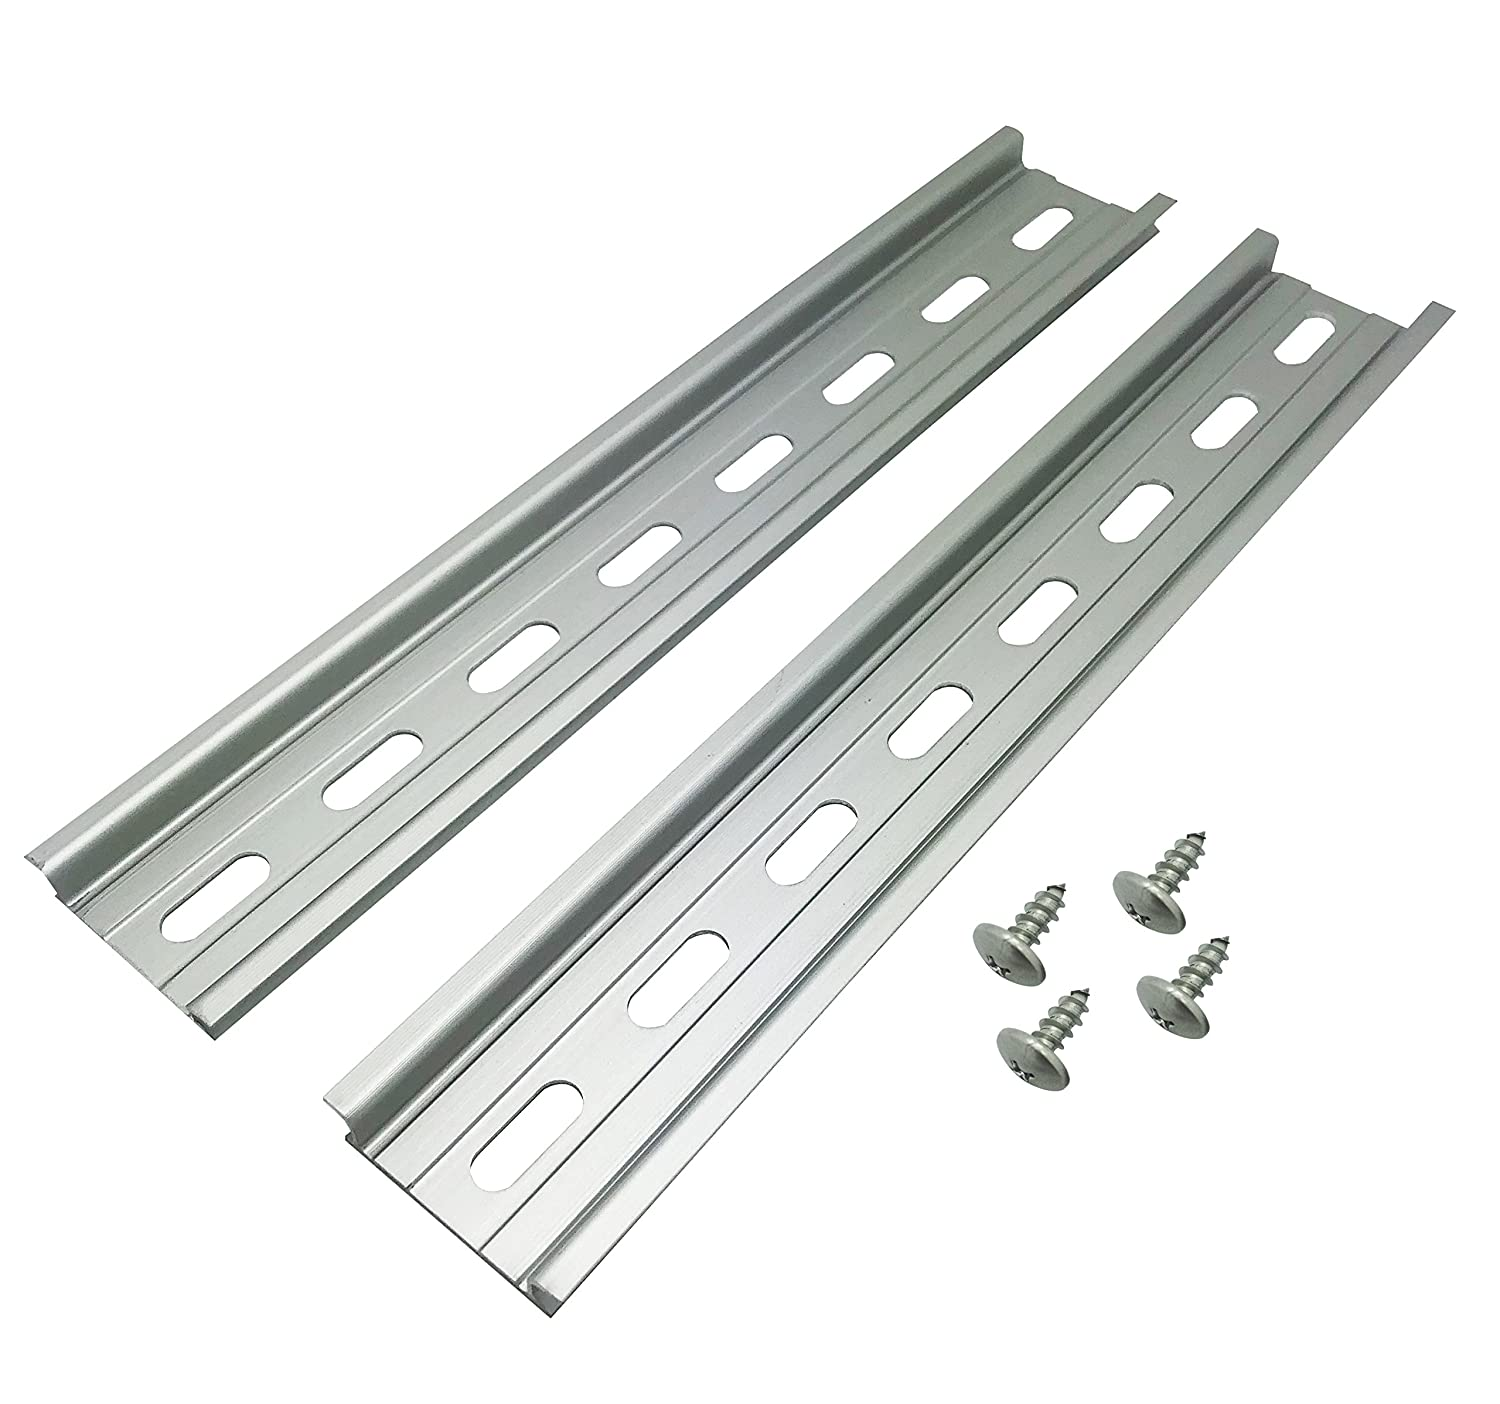 Electrodepot Slotted Aluminum DIN Rail, 35mm x 8', Silver - 2 Pieces with 4#10 Stainless Steel Screws 35mm x 8